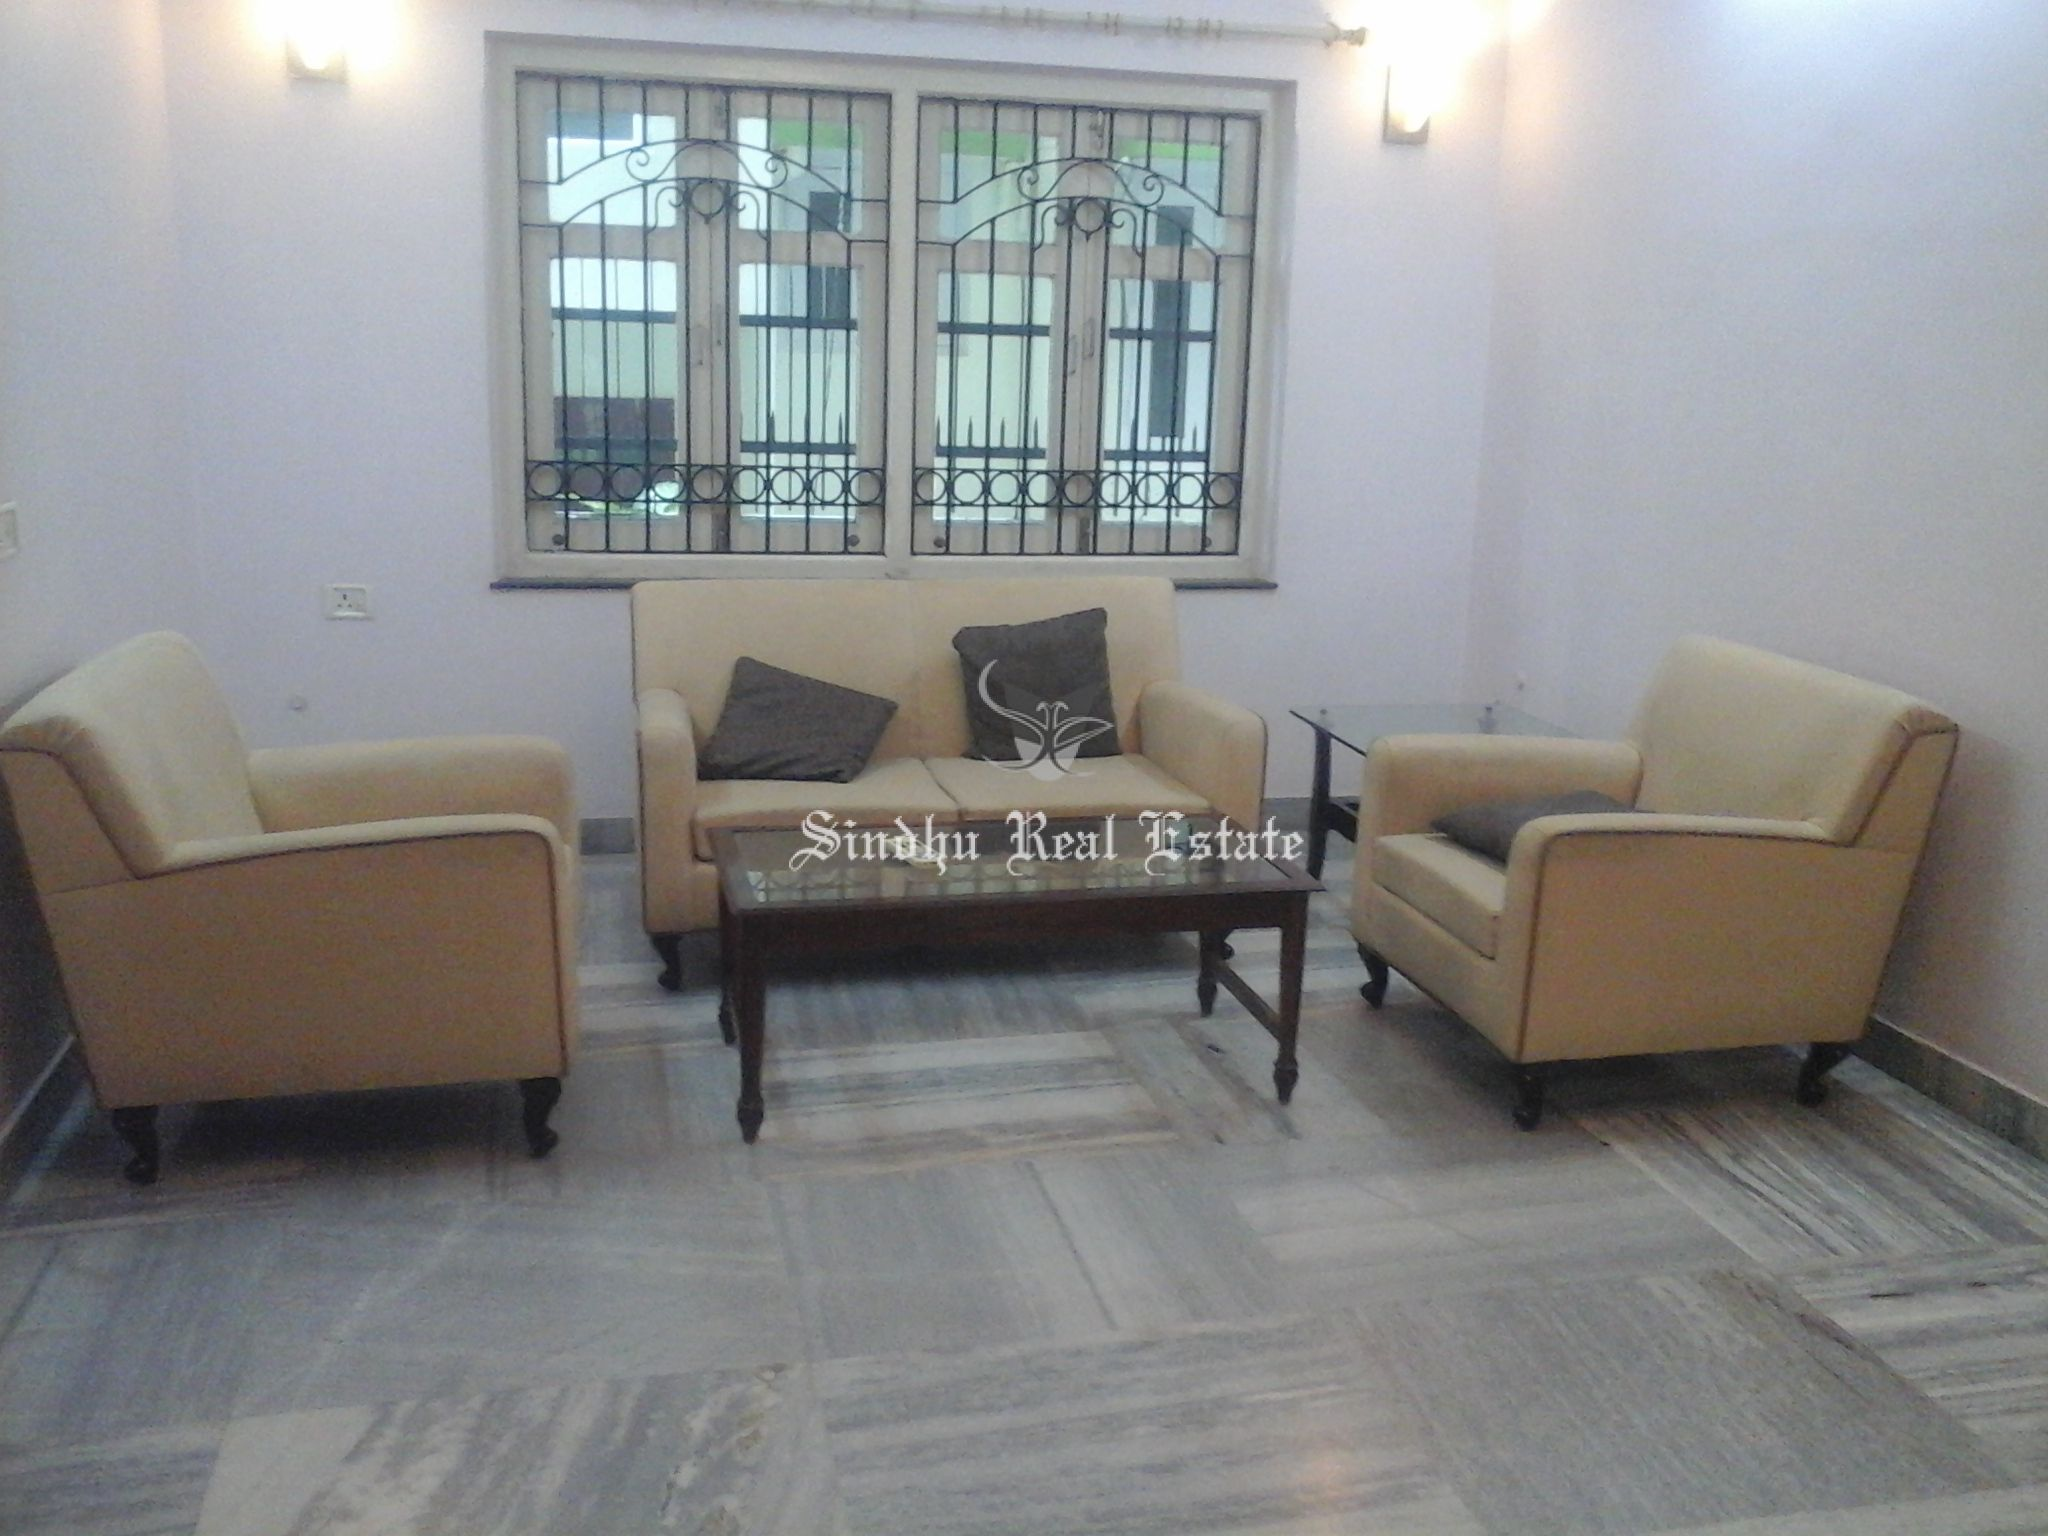 RESIDENCIAL FLAT FOR RENT IN SALT LAKE